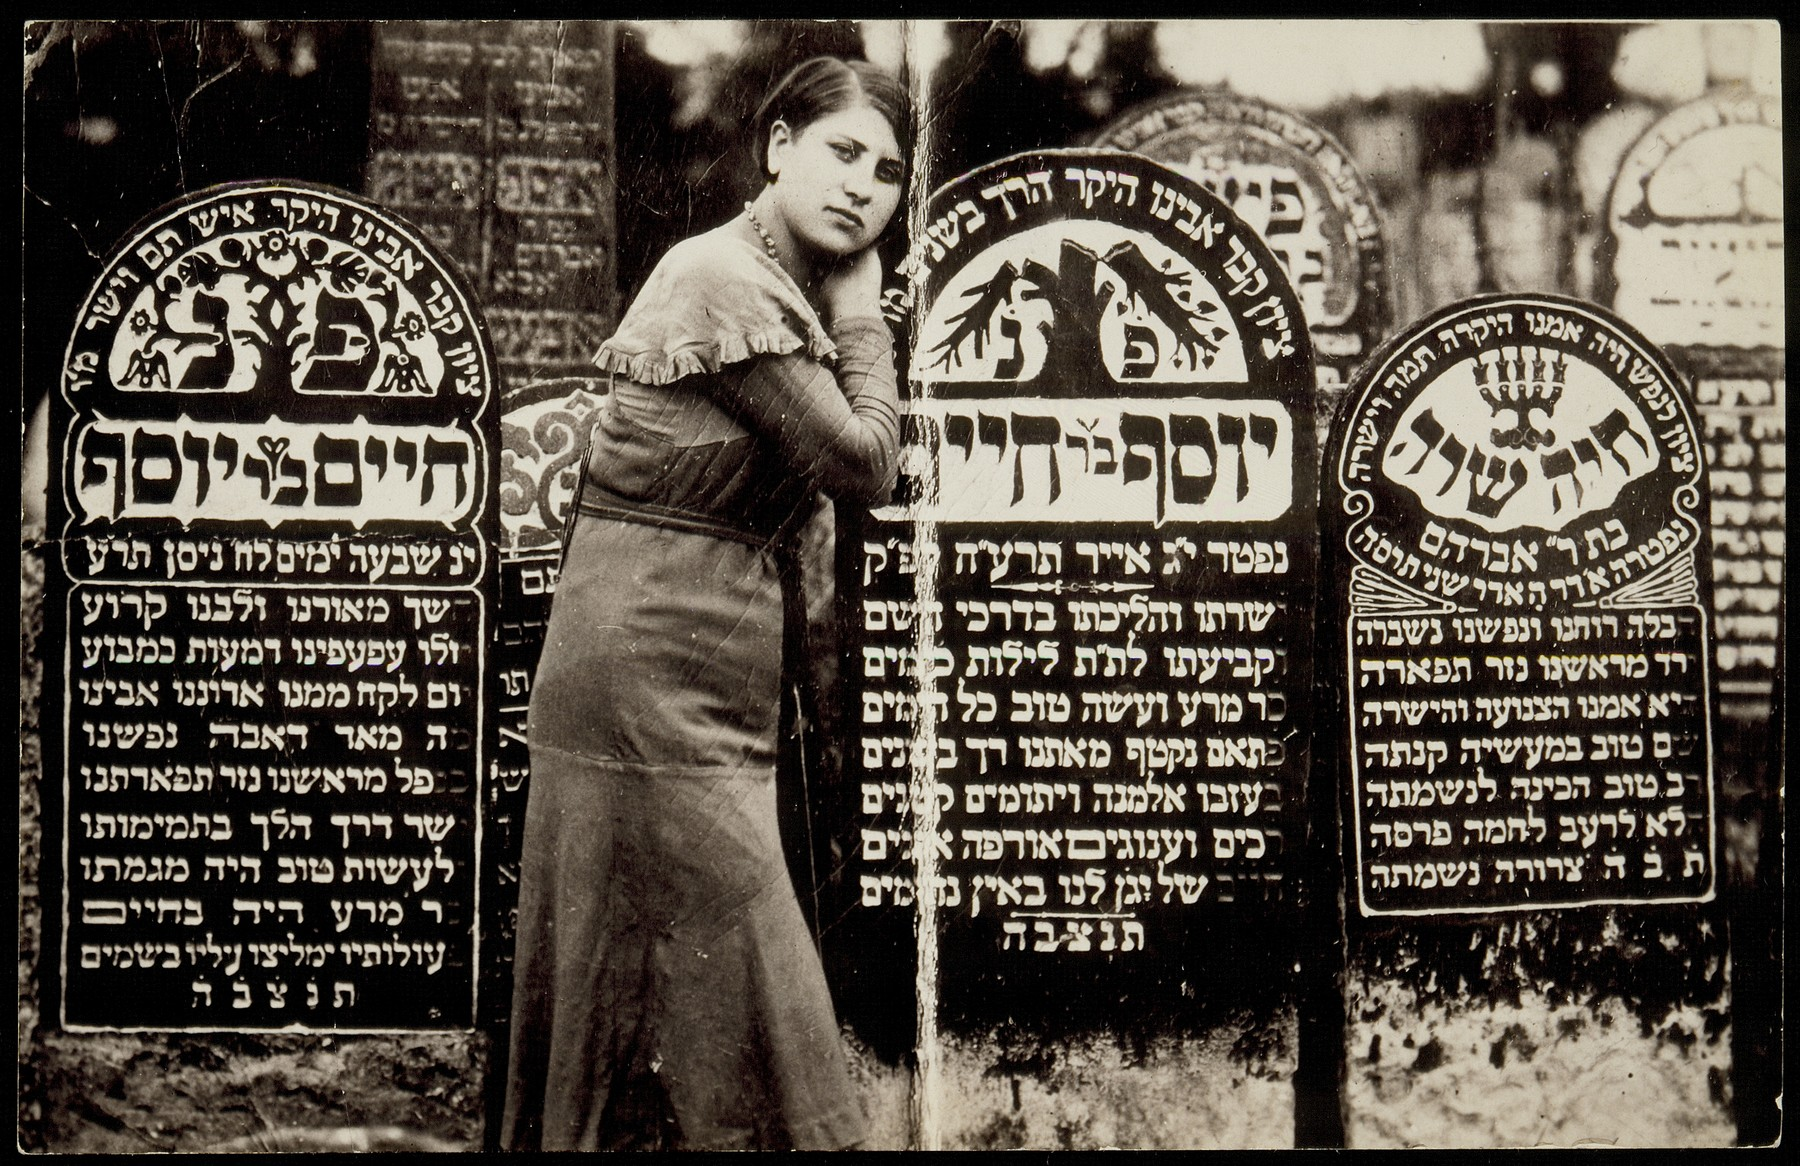 Rivka Shuster stands at the grave of her father Joseph who died in 1915.   On her right is the grave of her grandfather Hayyim Shuster, who died in 1910.  Rivka survived the Holocaust in hiding with her son Joseph who was born on January 31, 1943 in the forest